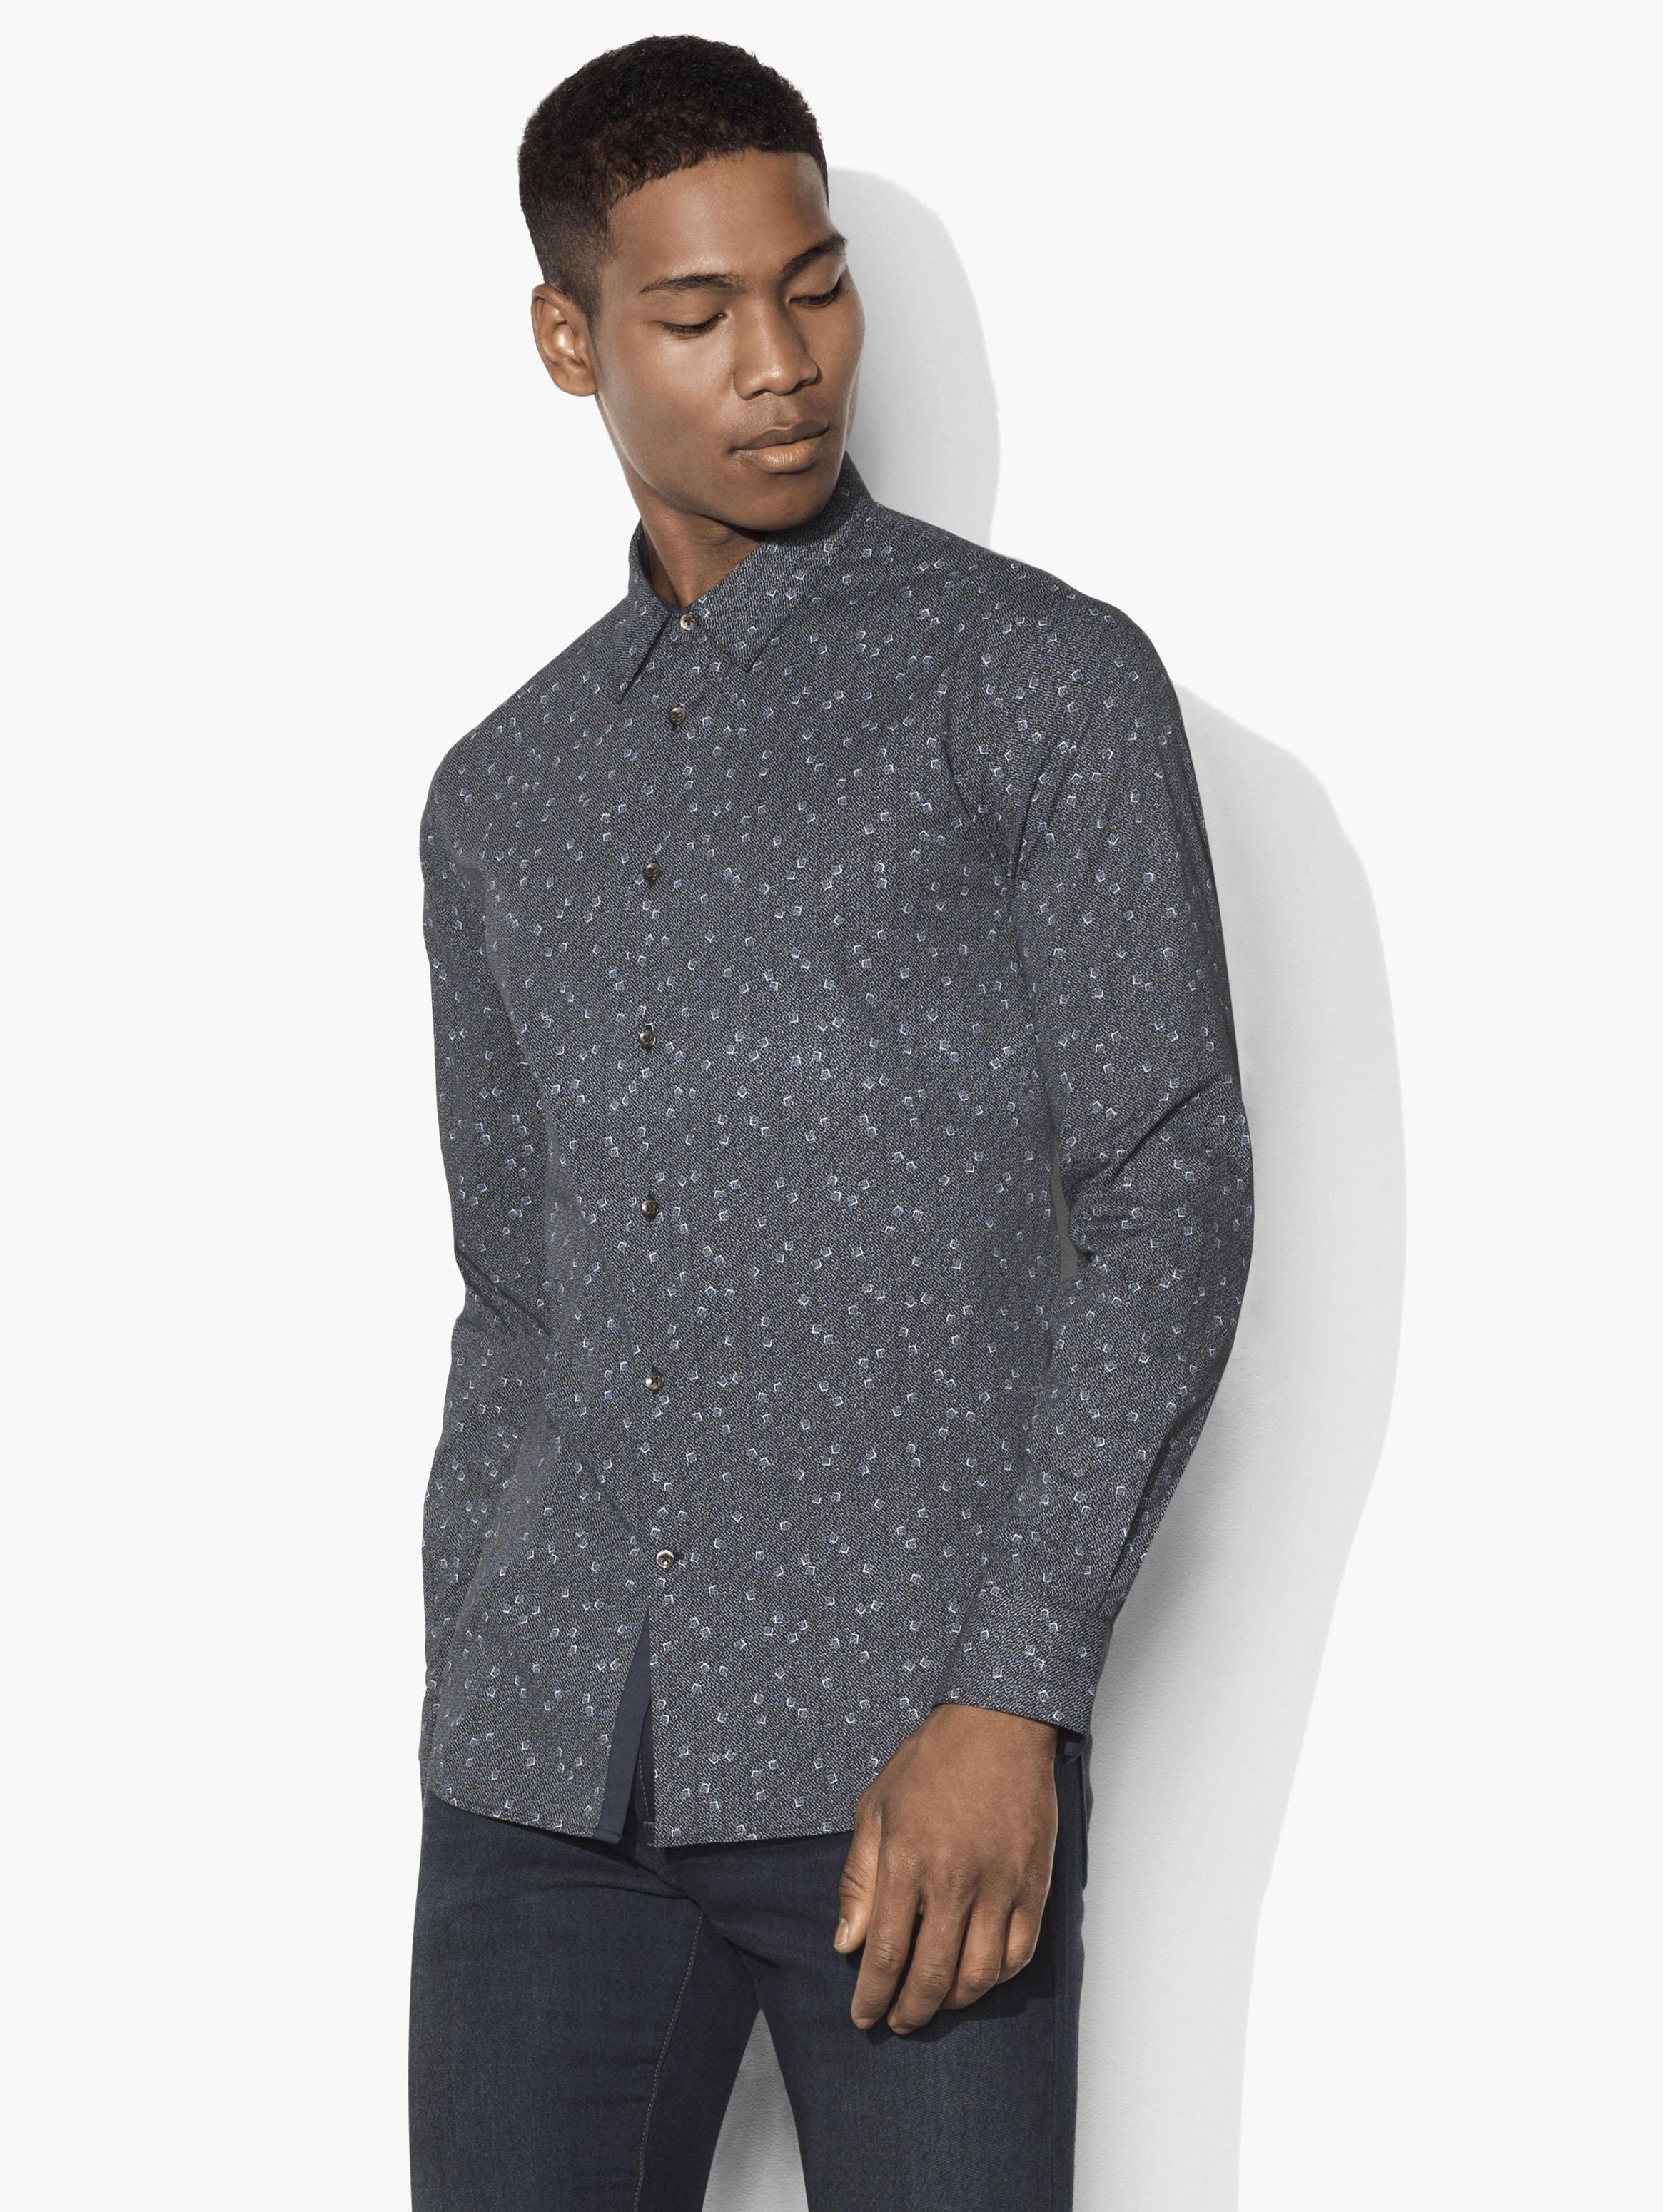 Mayfield Geometric Dice Shirt